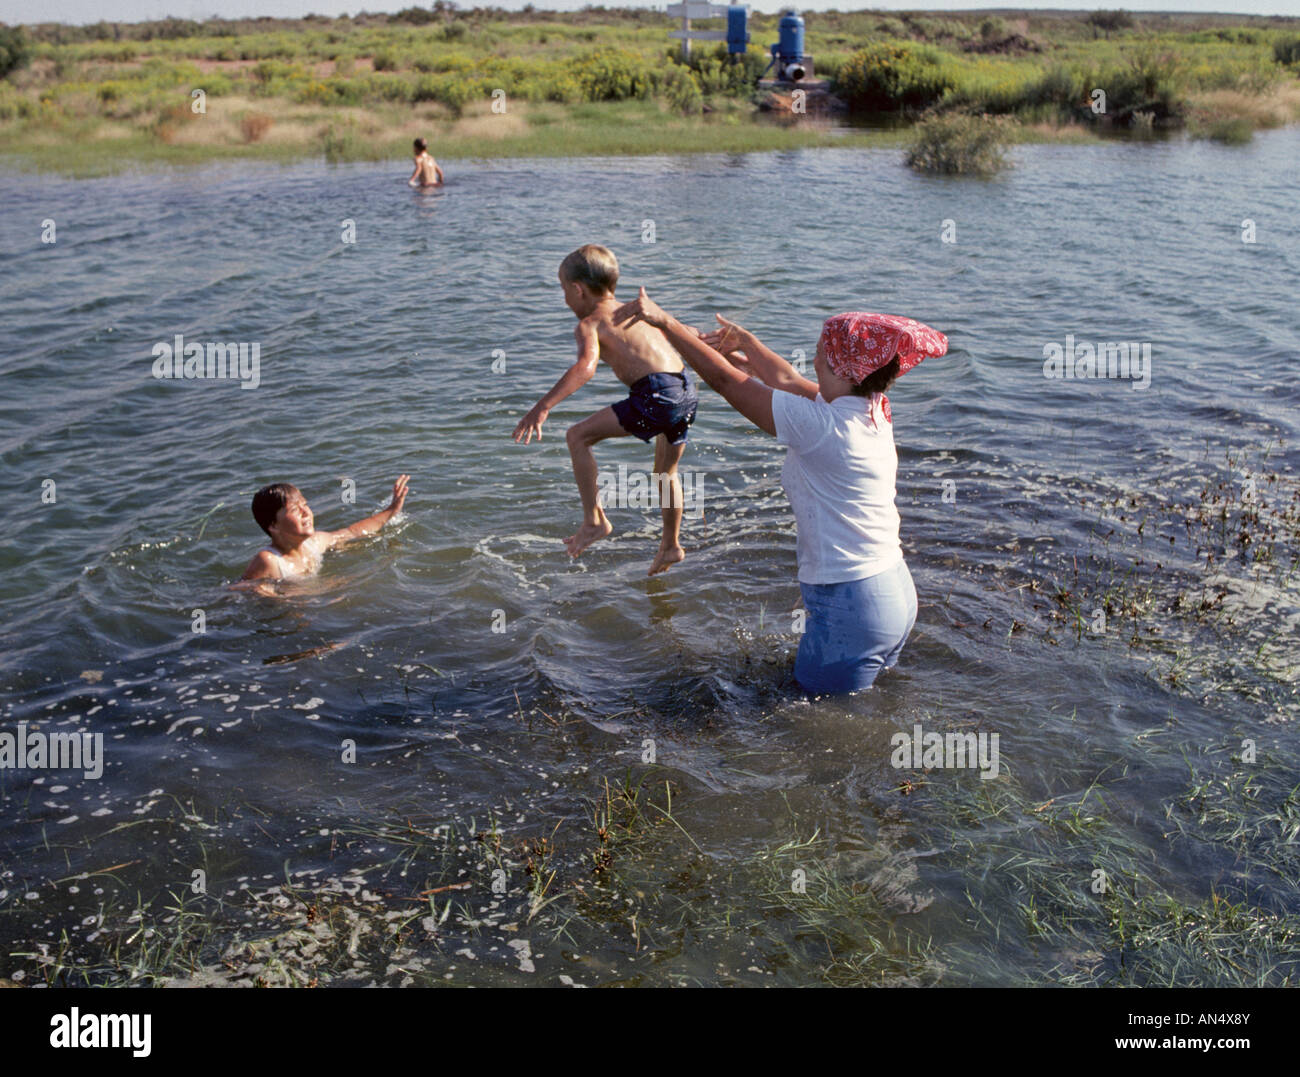 A Farm Wife And Her Children Spend A Hot Summer Day Swimming In A Stock Photo Alamy